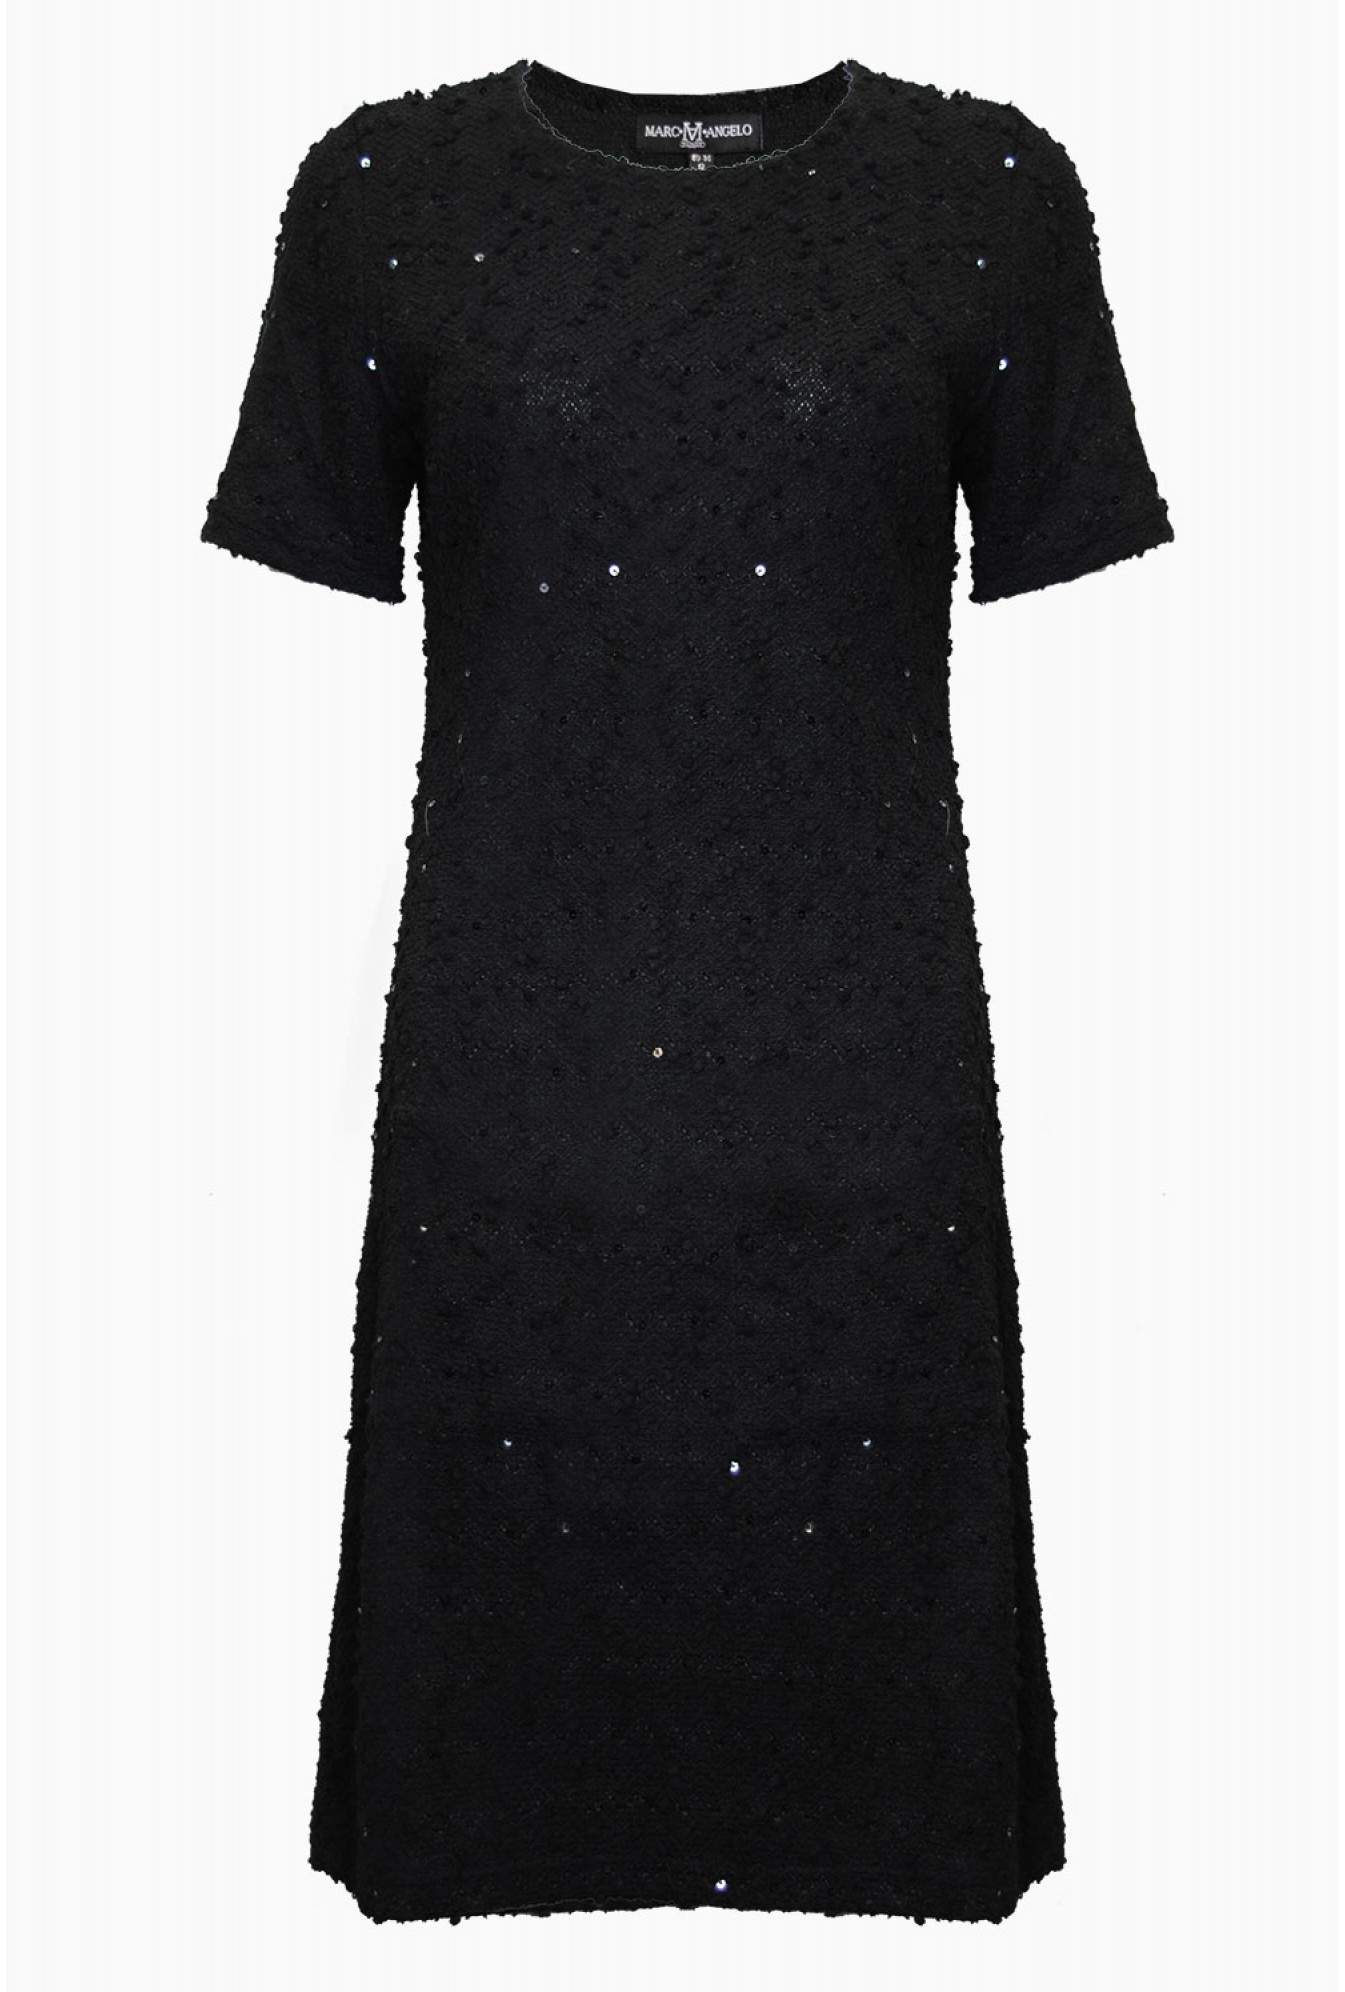 a3431e5cde3 Marc Angelo Aisling Boucle Tunic Dress in Black